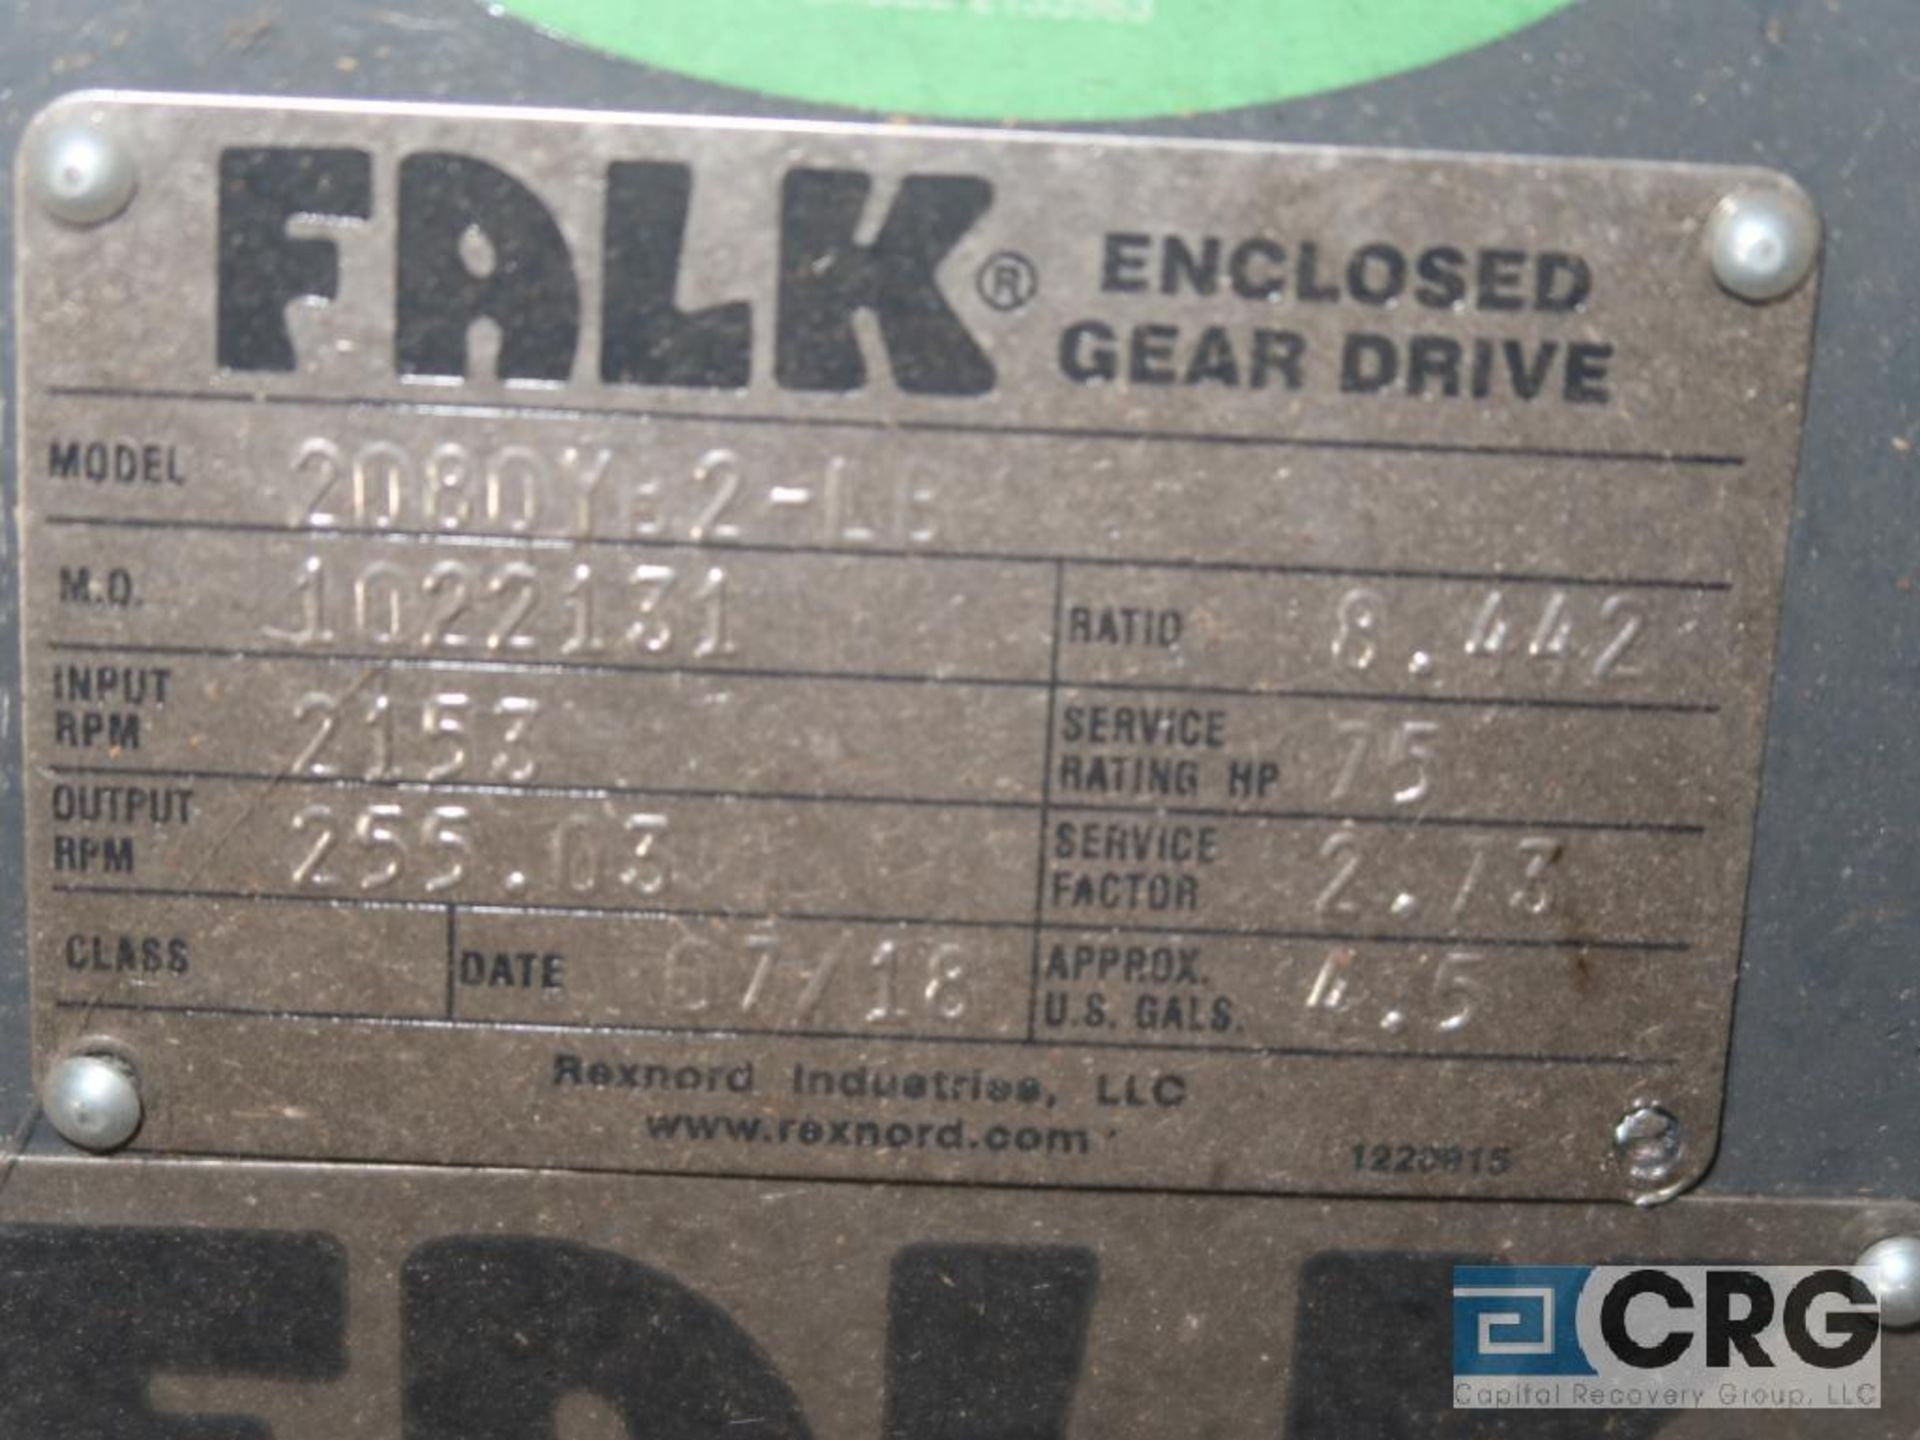 Falk 2080YB2LB gear drive, ratio-8.442, input RPM 2,153, output RPM 255.3, service rate HP. 75, s/ - Image 3 of 3